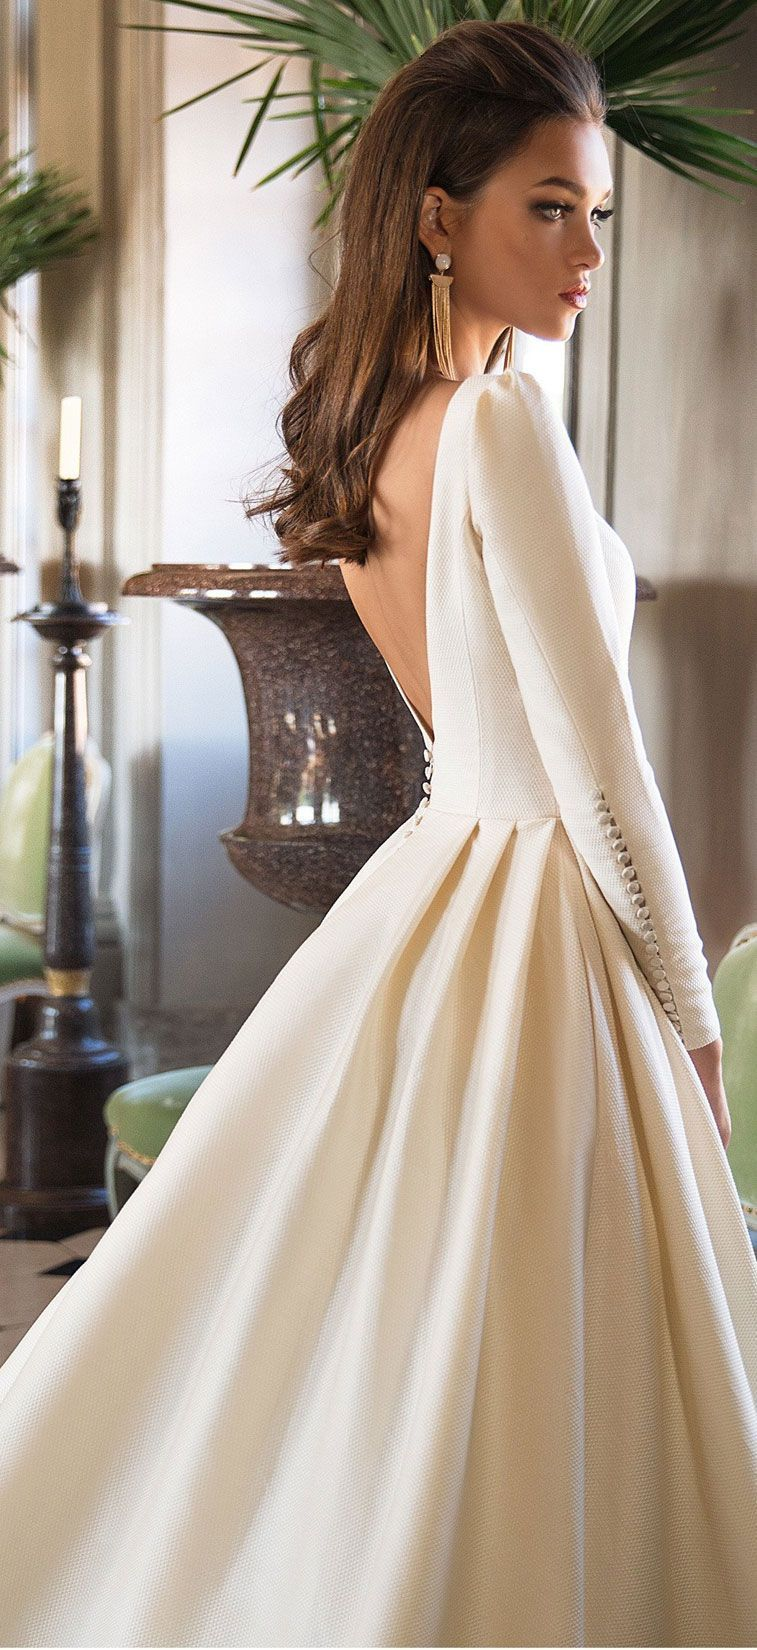 Ivory wedding dresses with sleeves  The Magic of Wedding Themes  Wedding Dress  Pinterest  Wedding